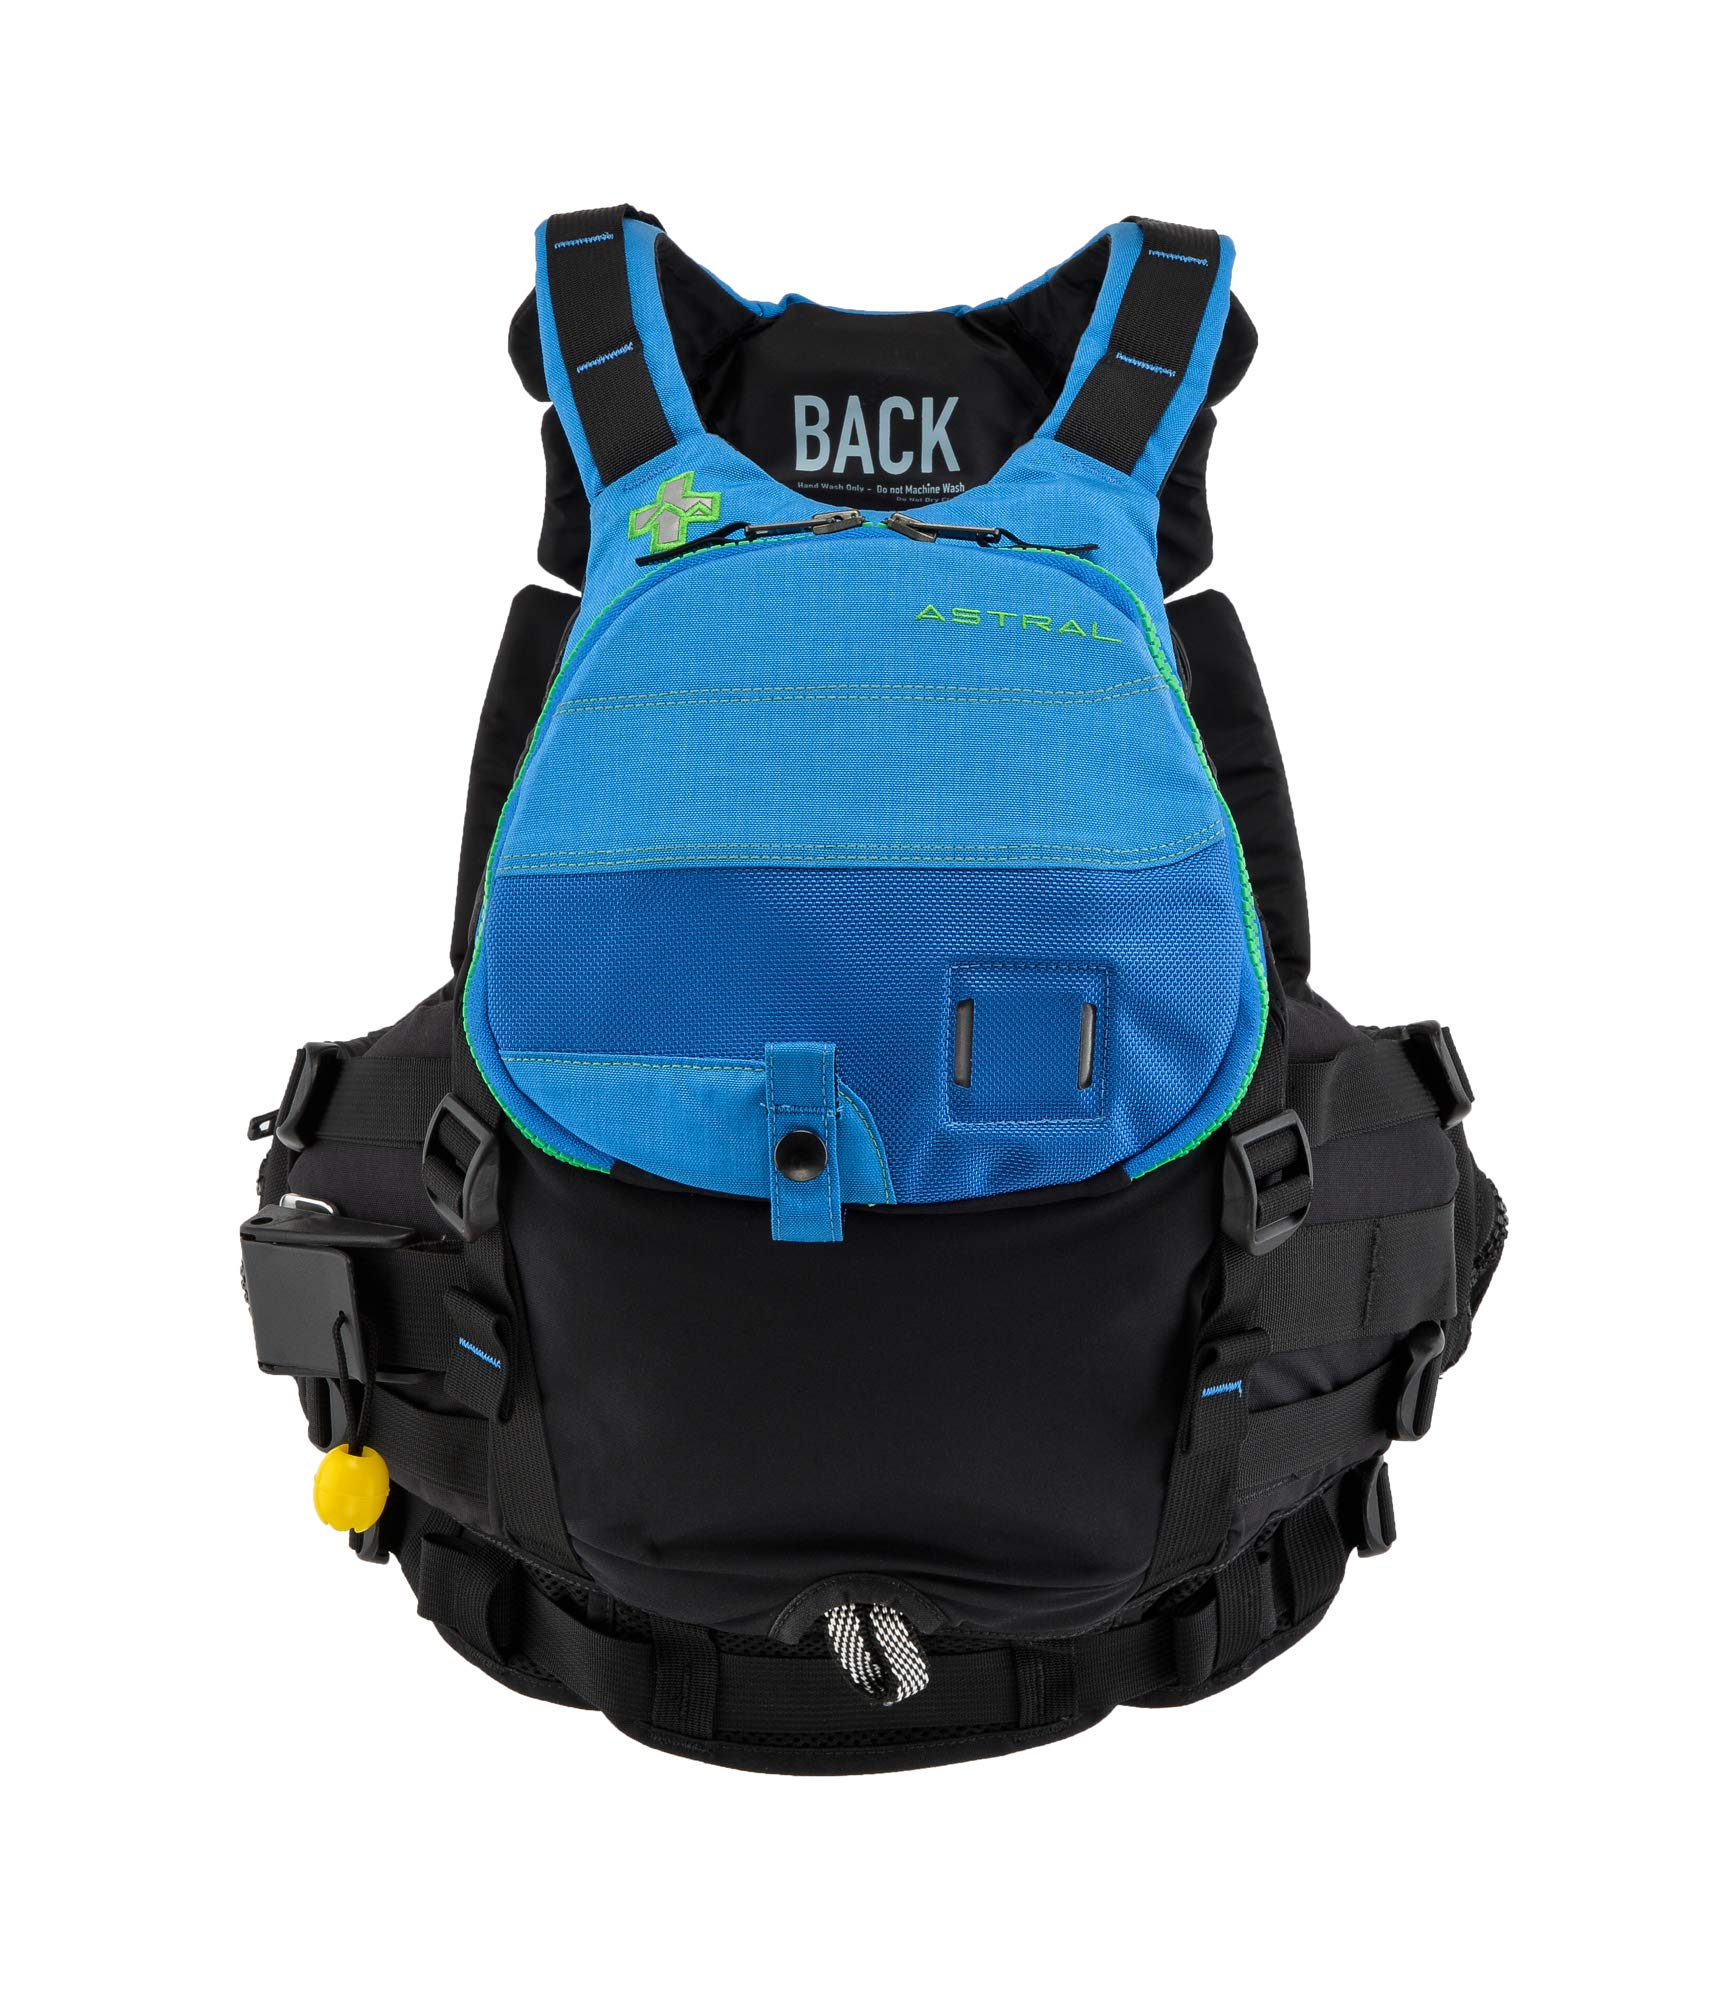 Astral GreenJacket Life Jacket PFD for Whitewater Rescue, Sea, and Stand Up Paddle Boarding, Deep Water Blue, Small/Medium